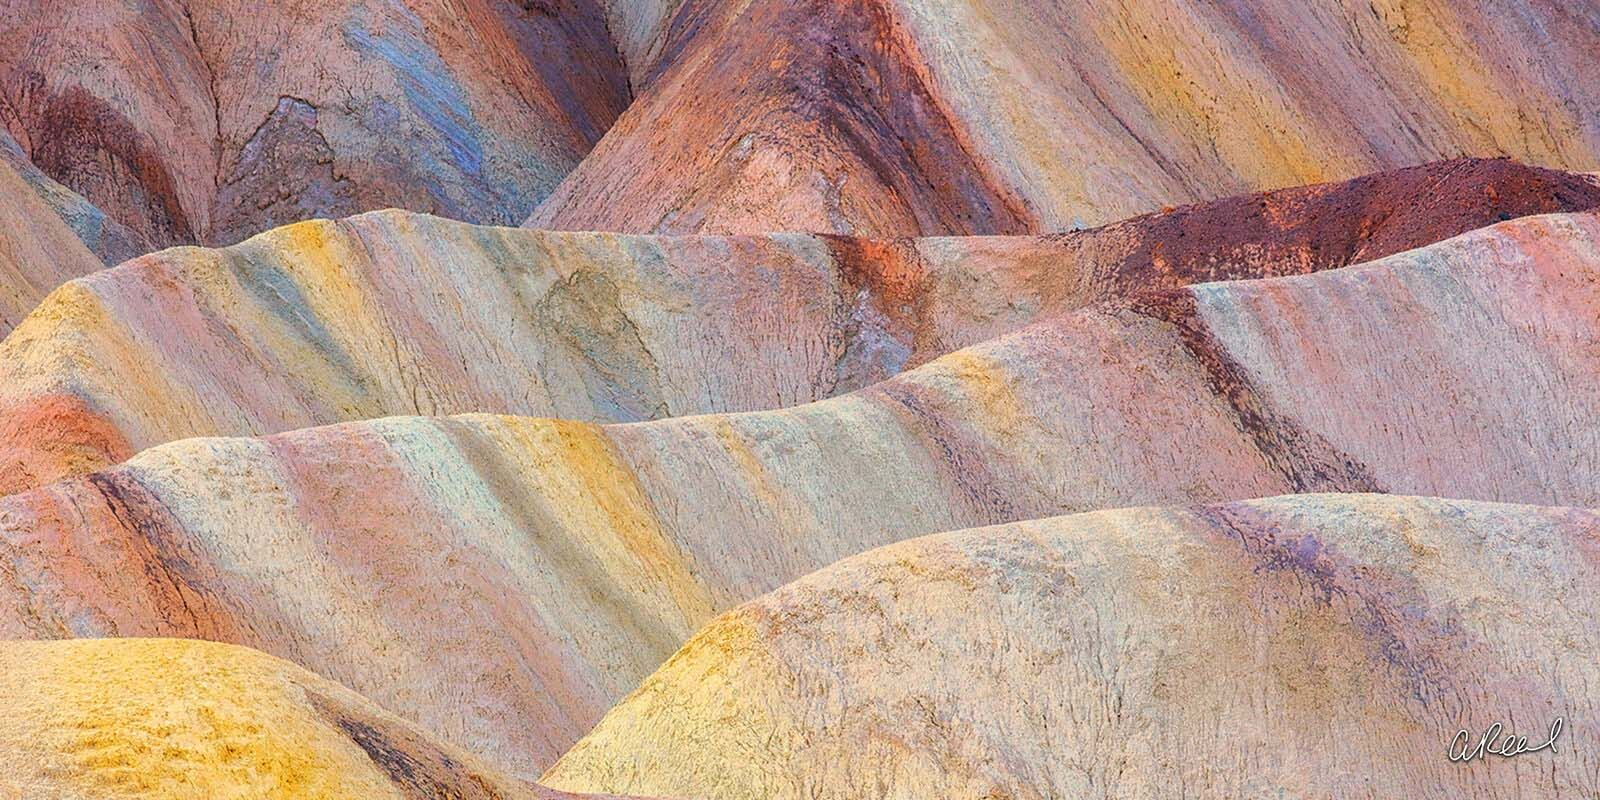 Transform your space with Aaron Reed's luxury fine art photography print, Pastels, from his Panoramic Wall Art collection. Order yours today!